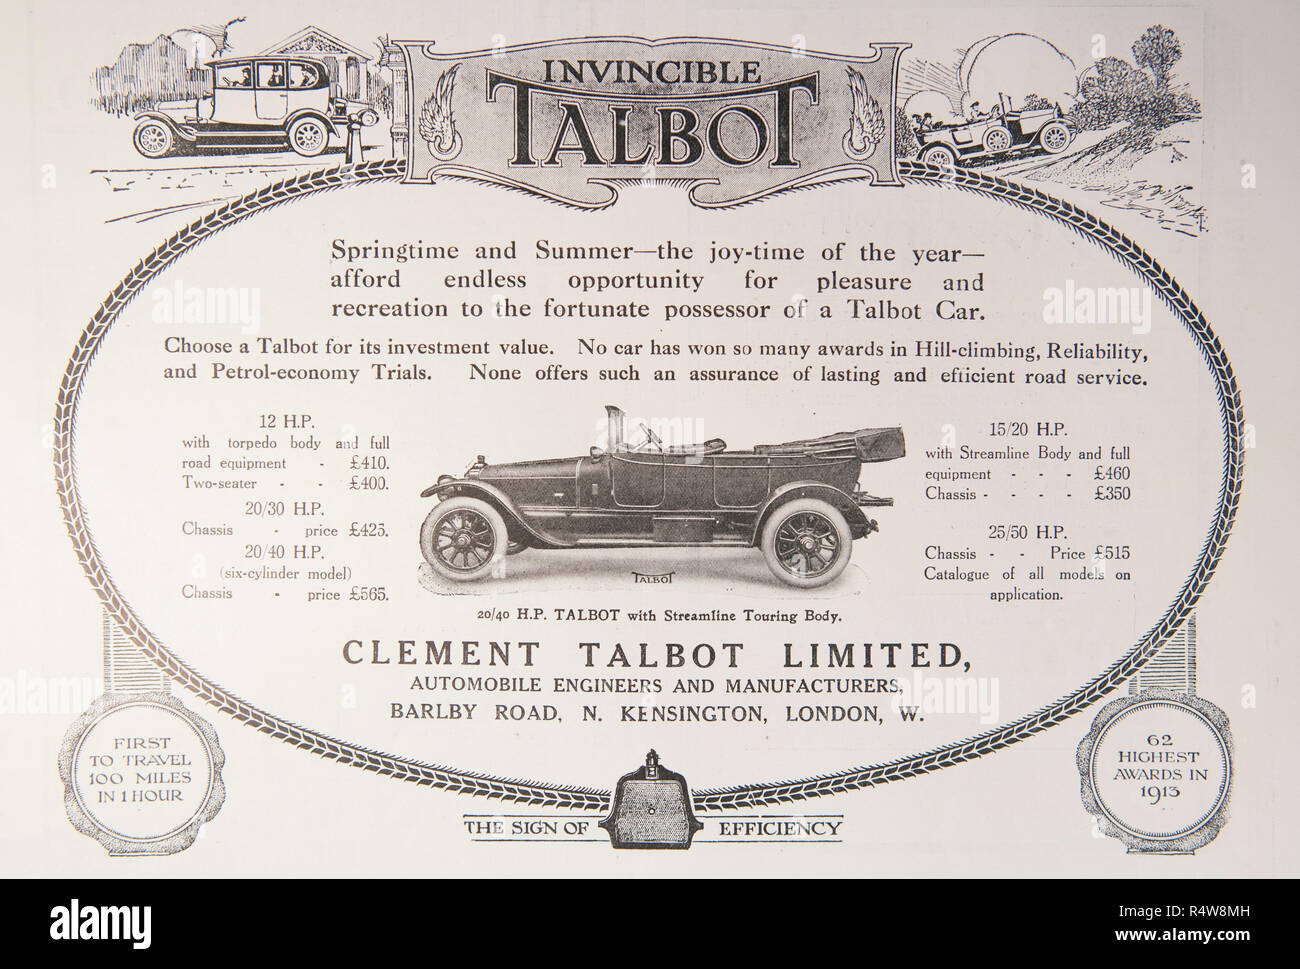 Clement Talbot Stock Photos & Clement Talbot Stock Images - Alamy